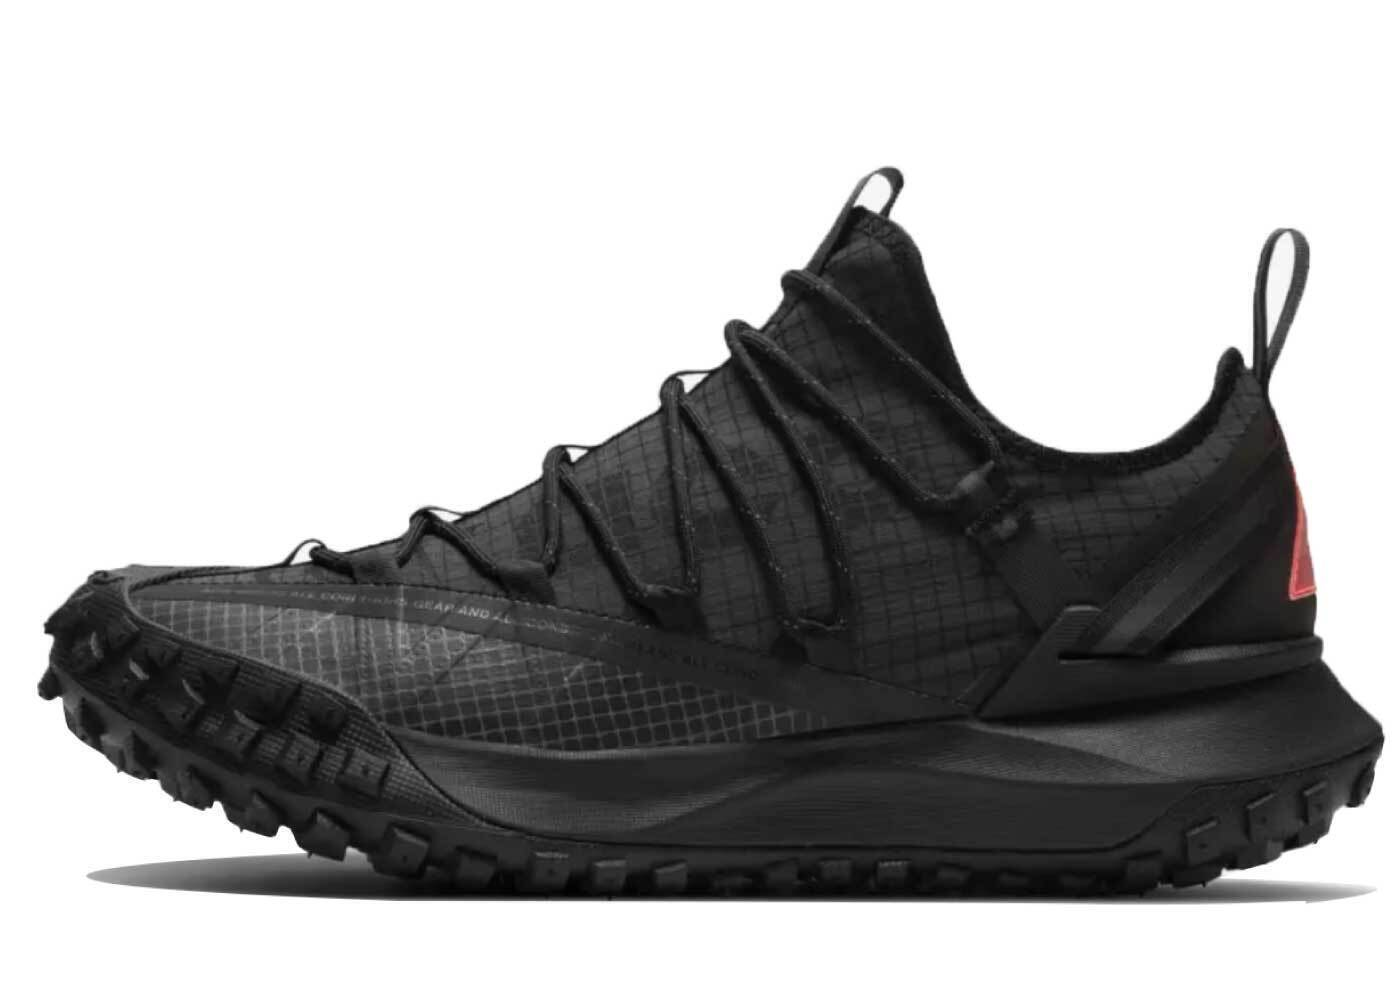 Nike Acg Mountain Fly Low Anthraciteの写真